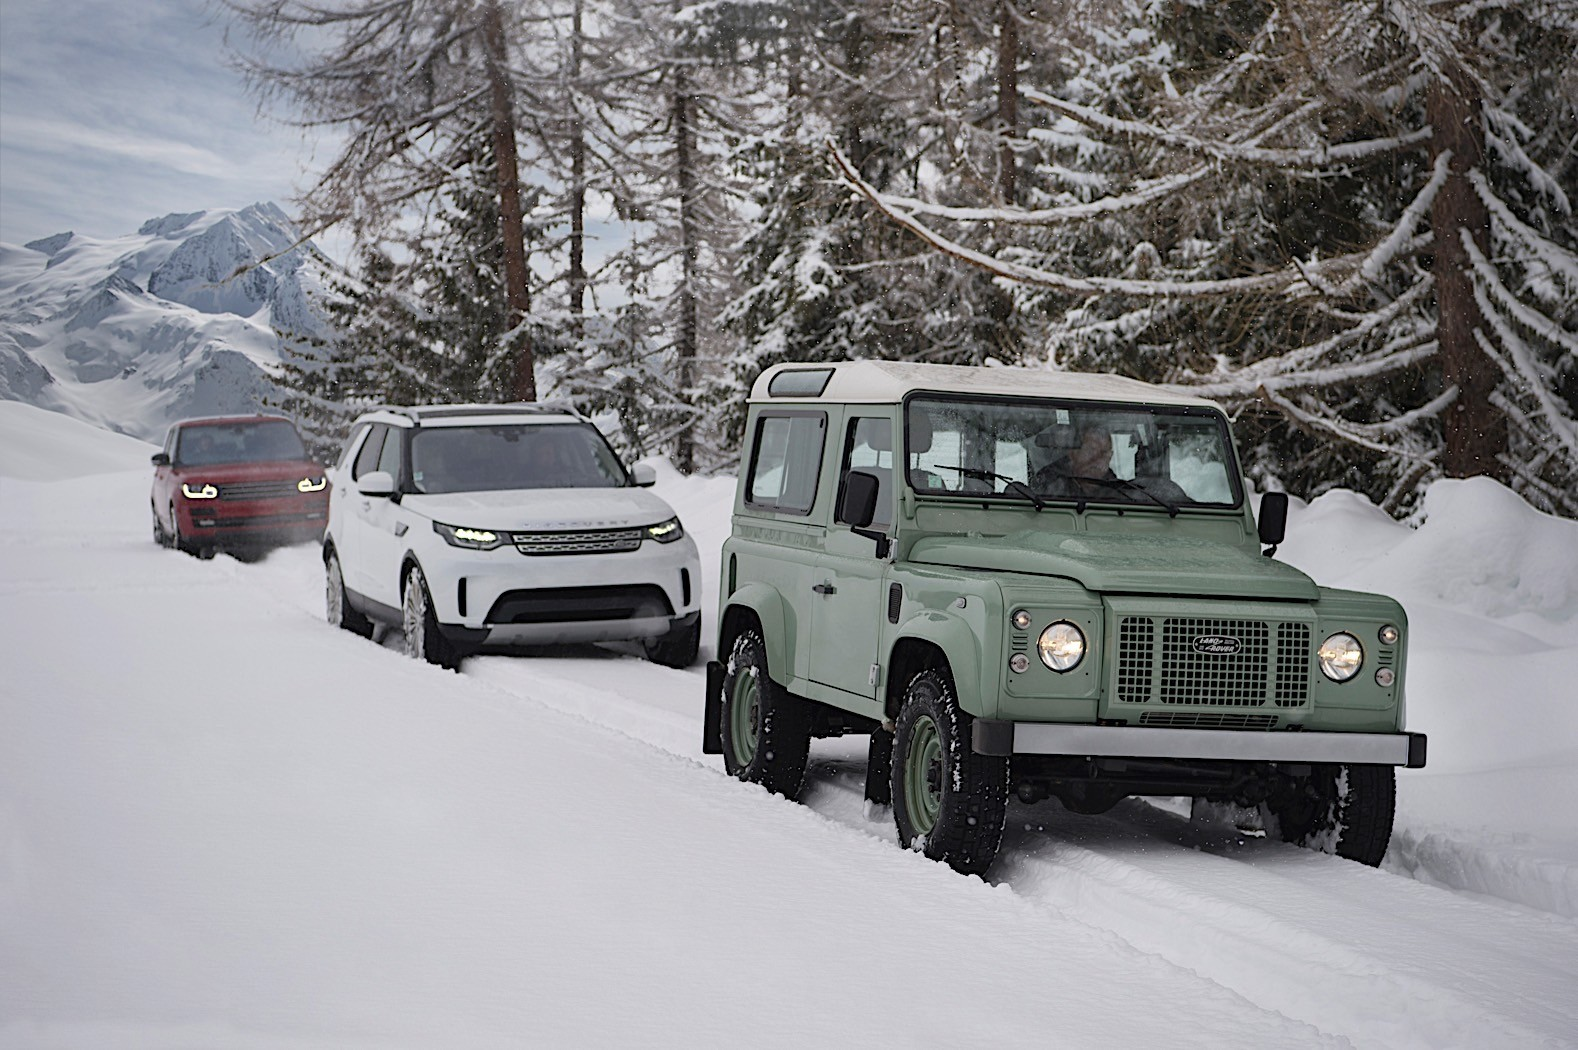 https://s1.cdn.autoevolution.com/images/news/gallery/land-rover-draws-a-820-foot-wide-defender-outline-in-the-french-alps_3.jpg